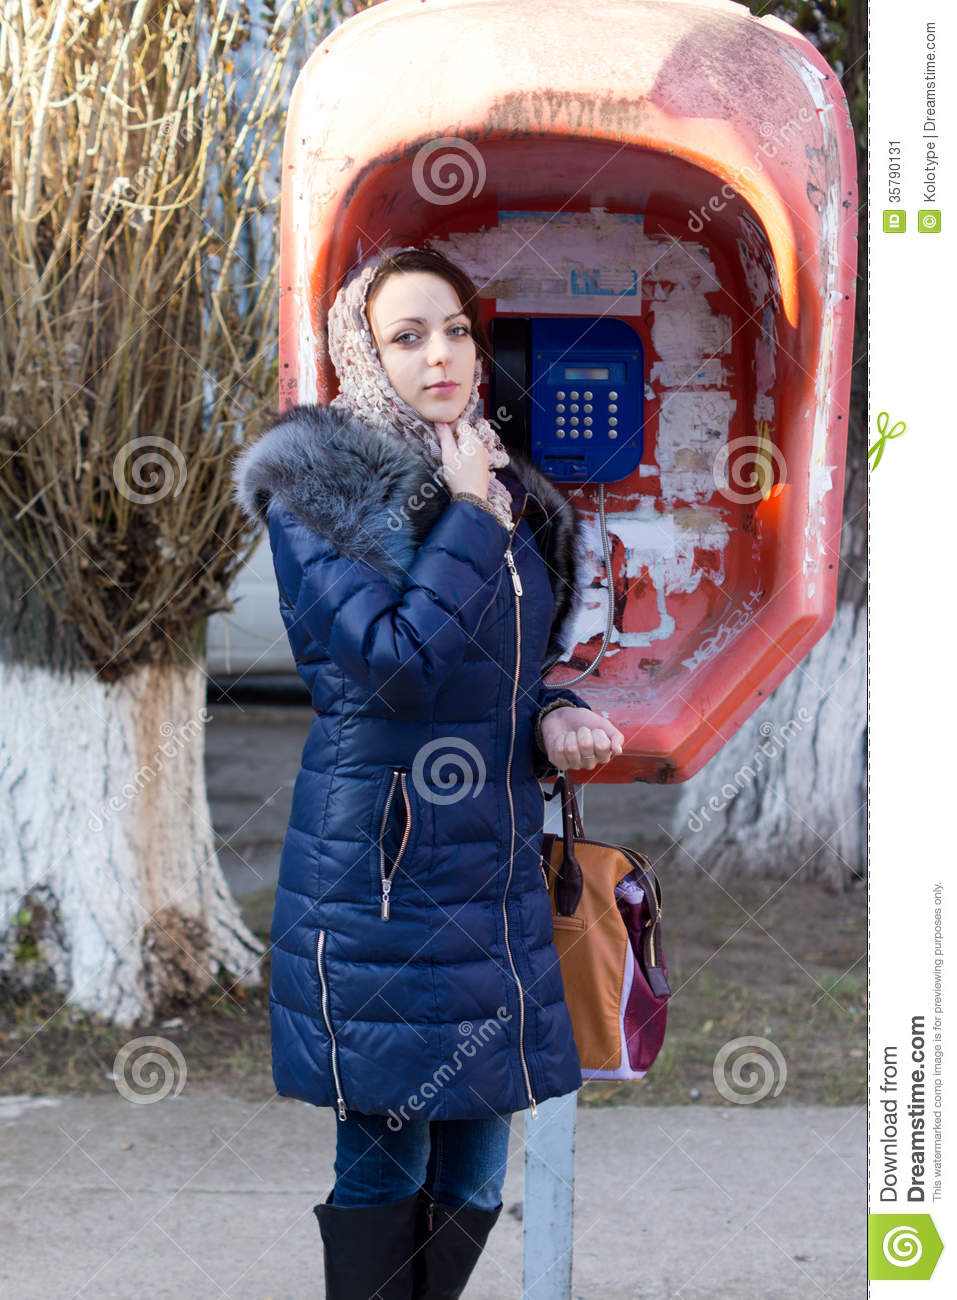 how to make a collect call from a public phone